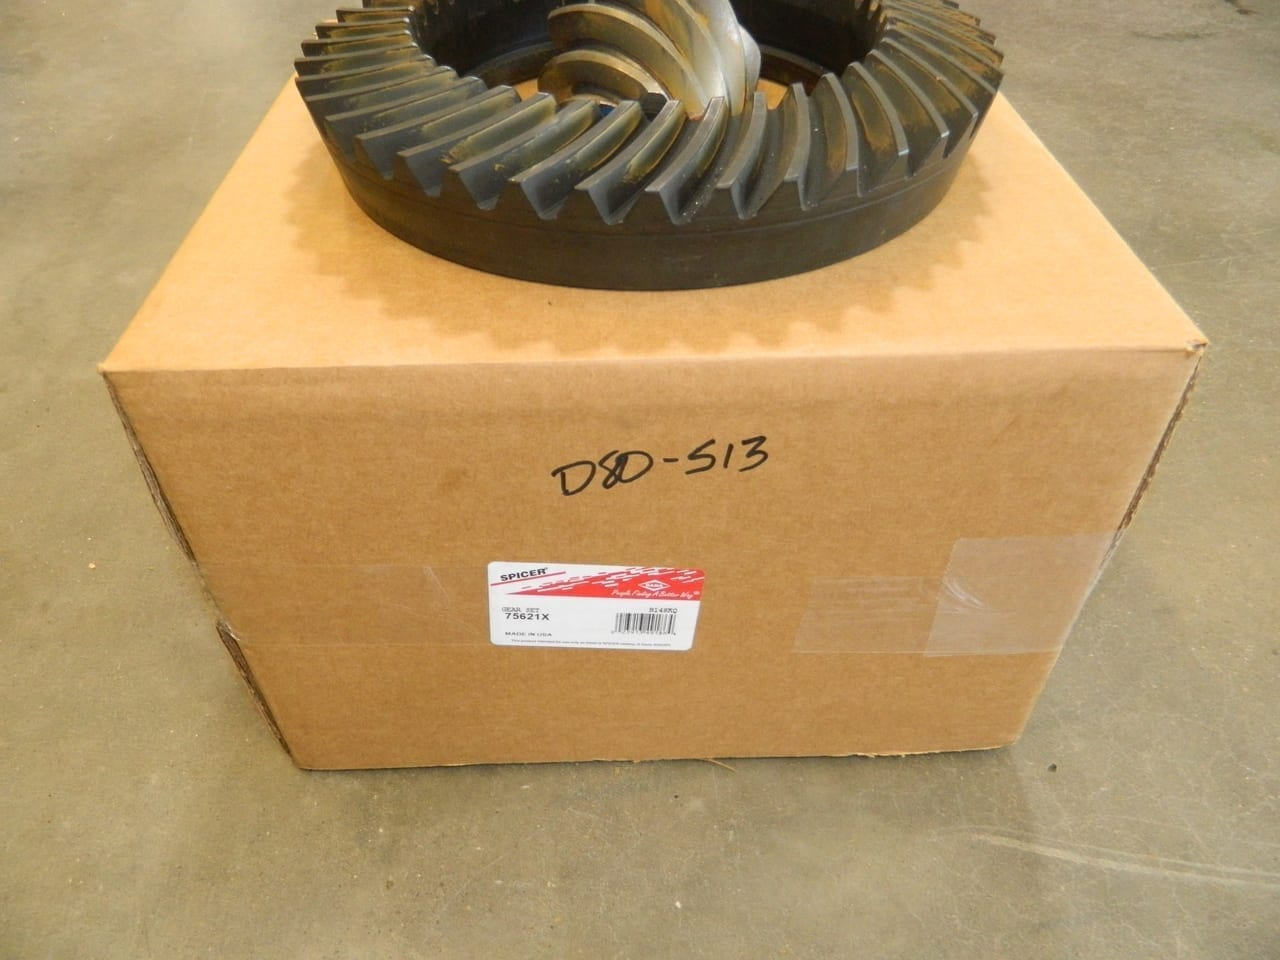 Genuine Dana 80 Ring & Pinion 5:13 Chevy Ford Dodge Made in U.S.A.